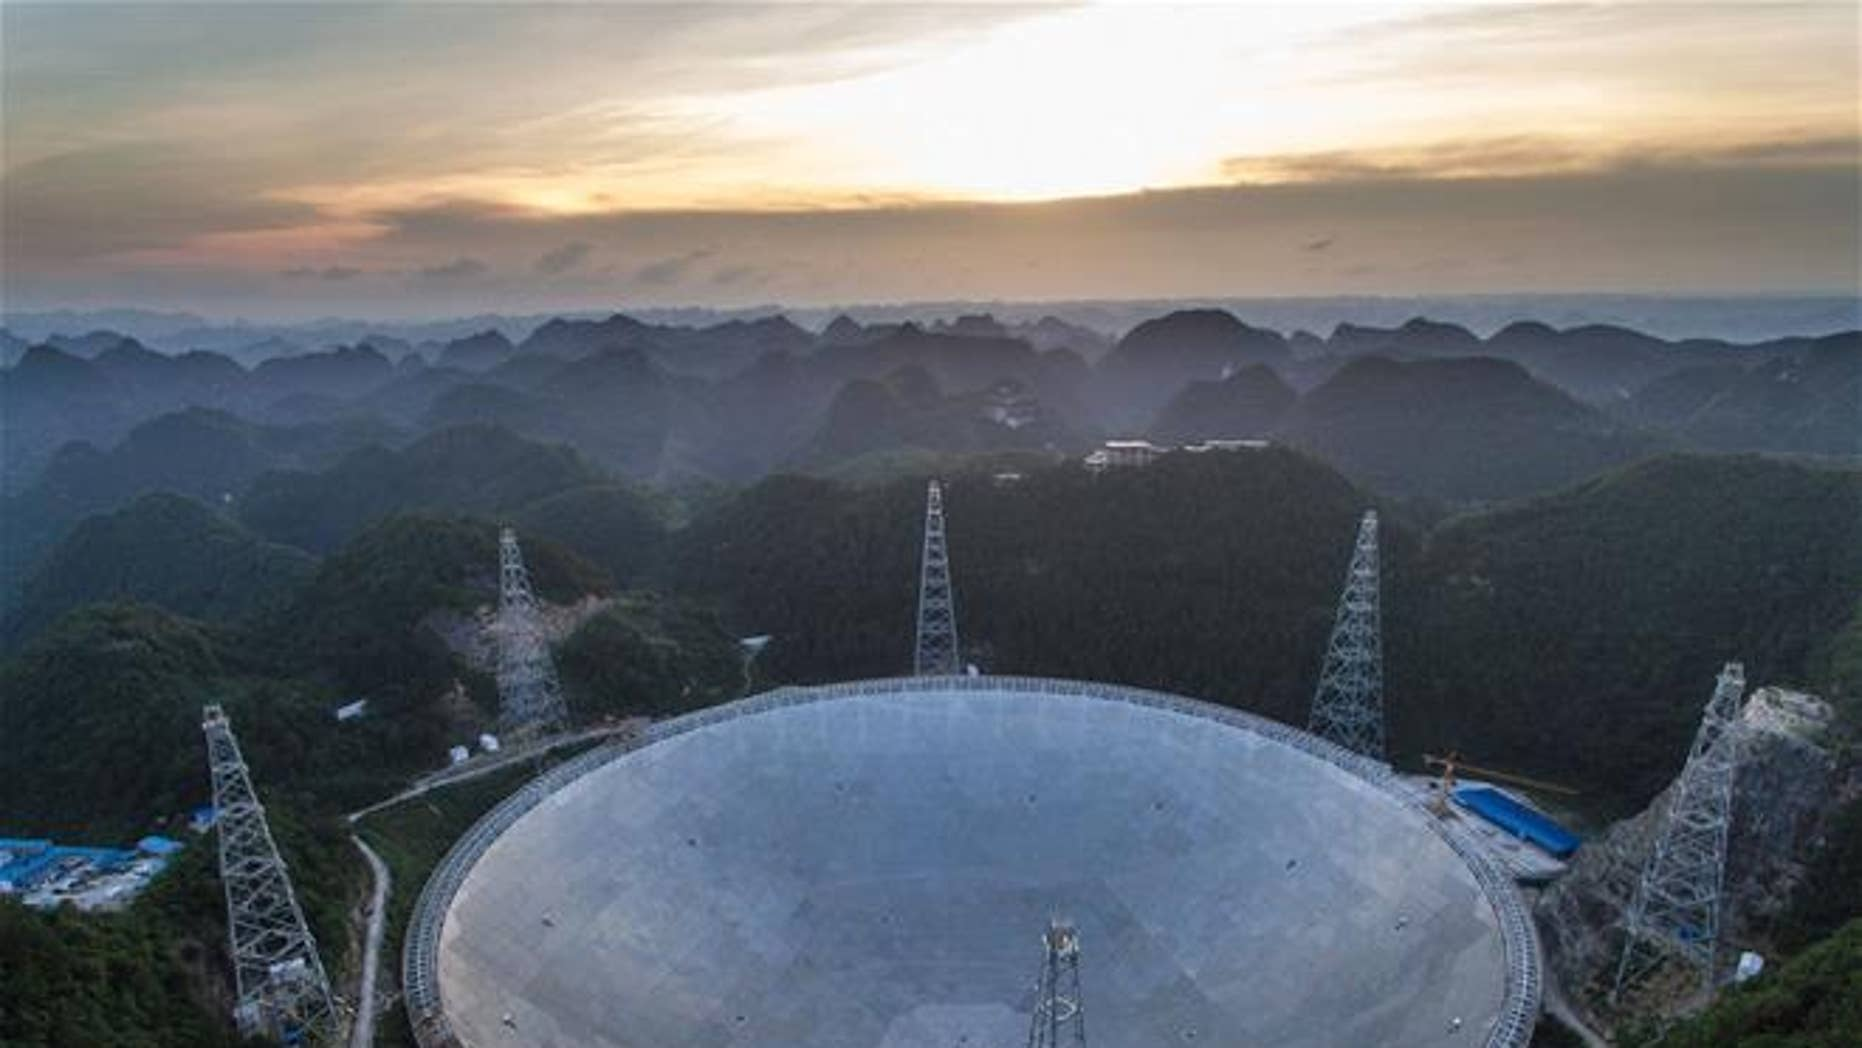 The sun sets above the Five-hundred-meter Aperture Spherical Telescope (FAST) in Pingtang County in southwestern China's Guizhou province.